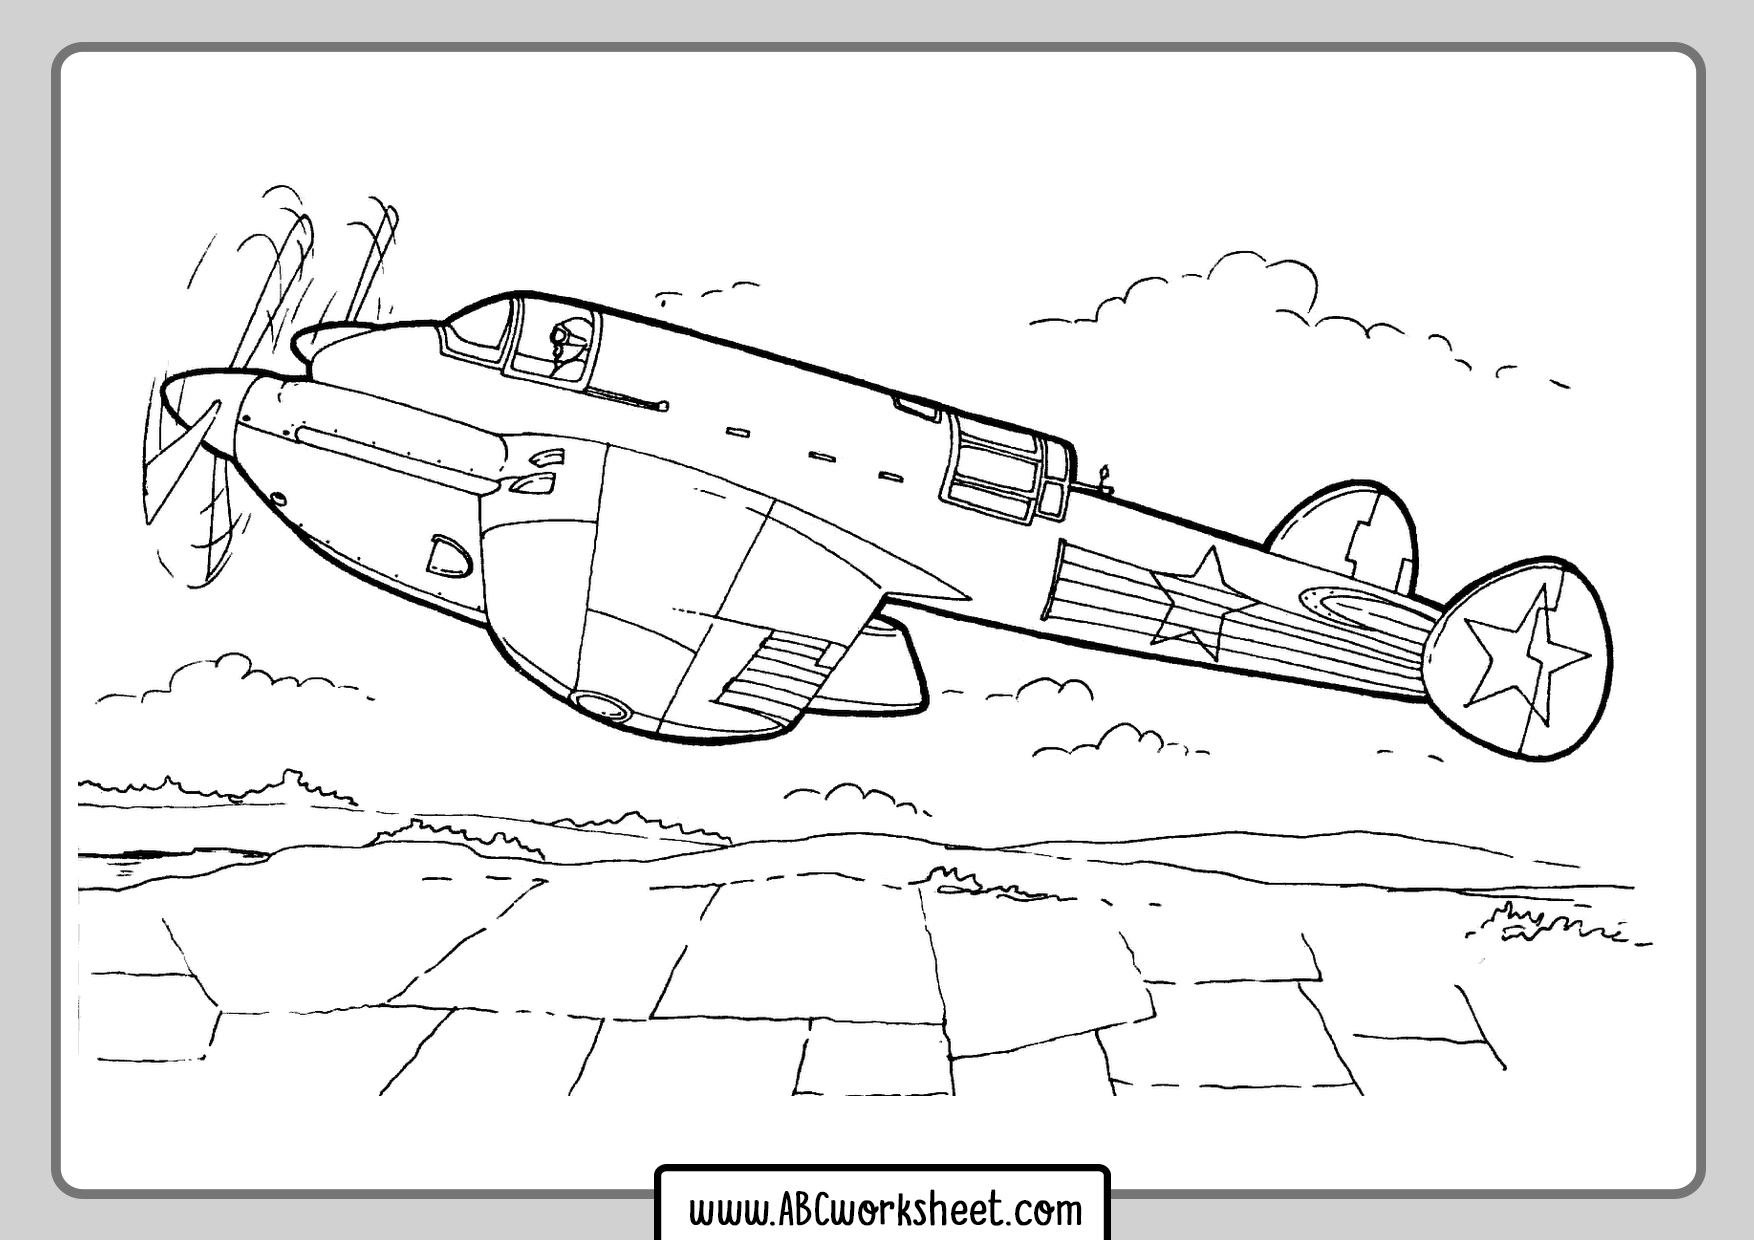 2ww Airplane Coloring Page